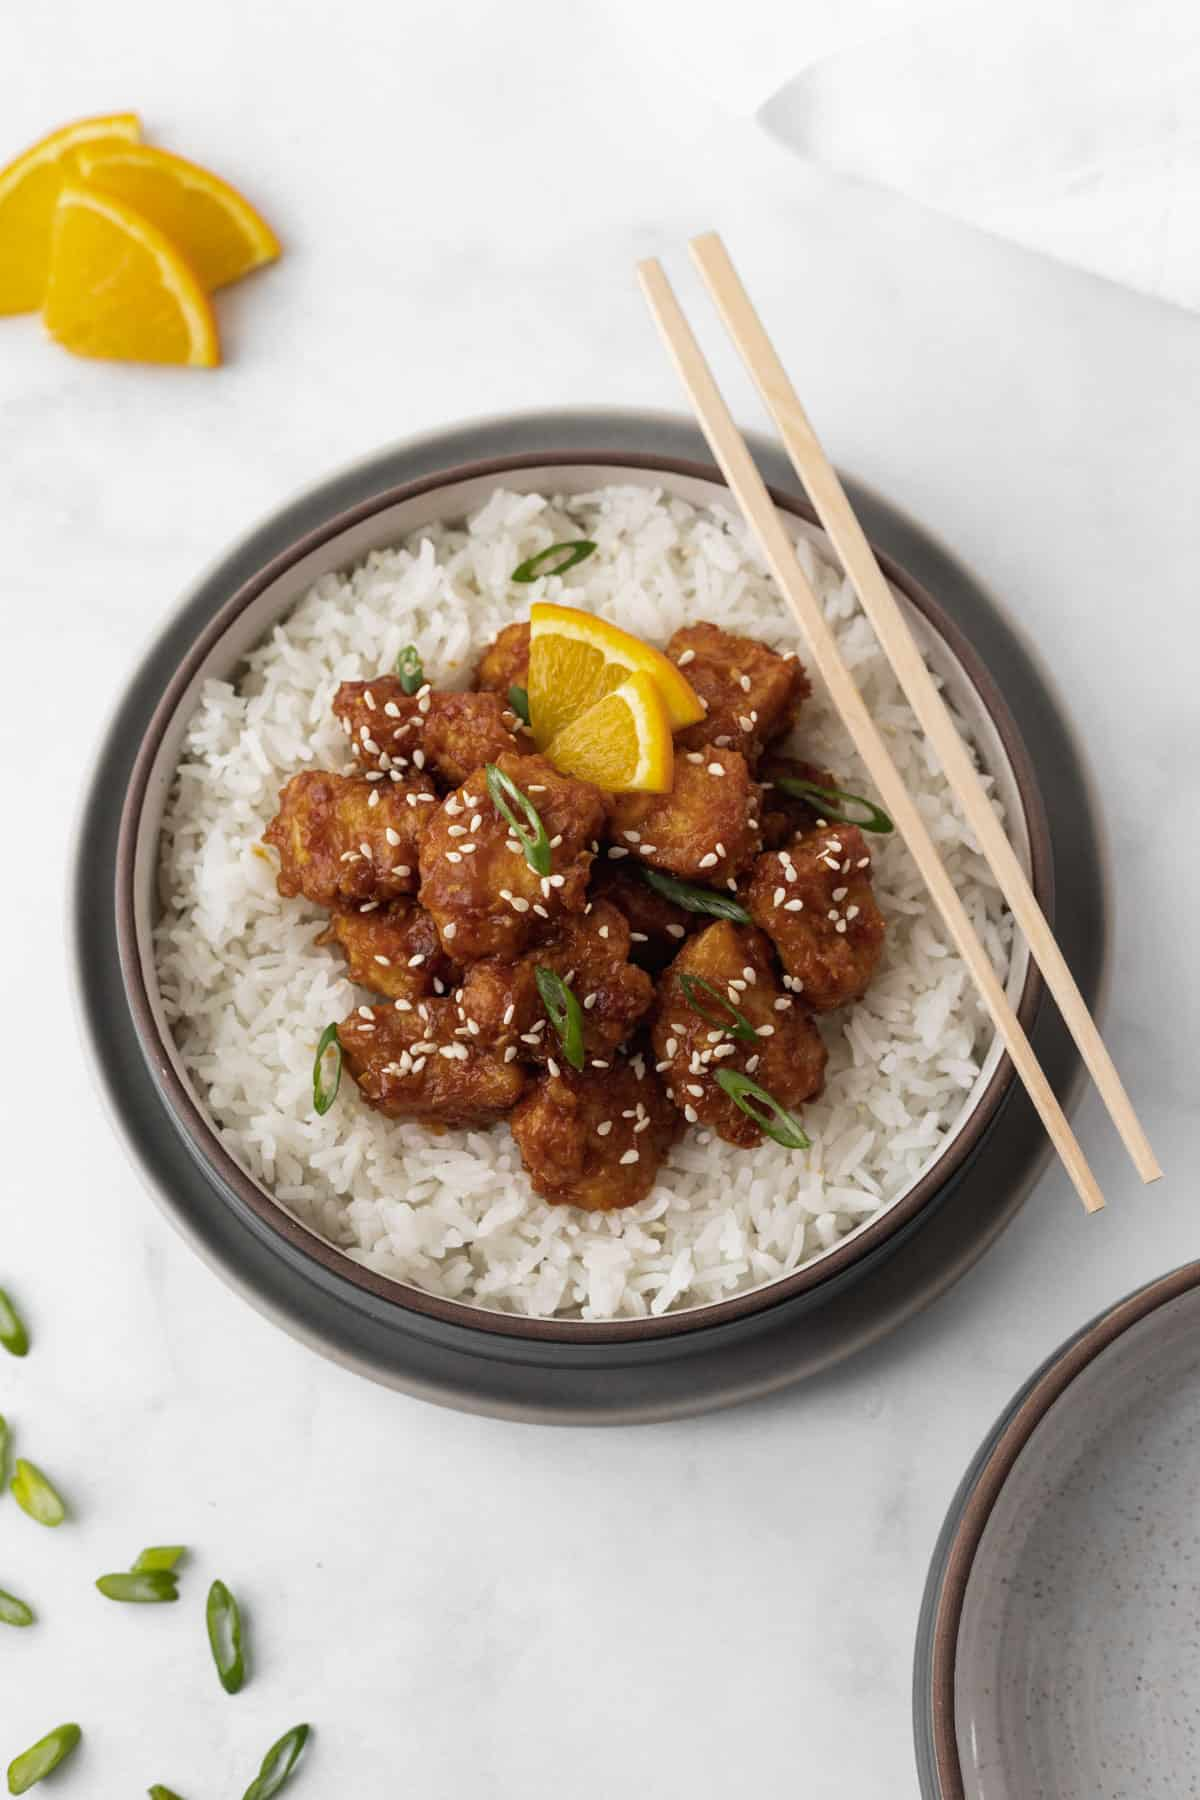 Air fryer orange chicken on top of white rice in a gray bowl with green onions and orange slices around it.